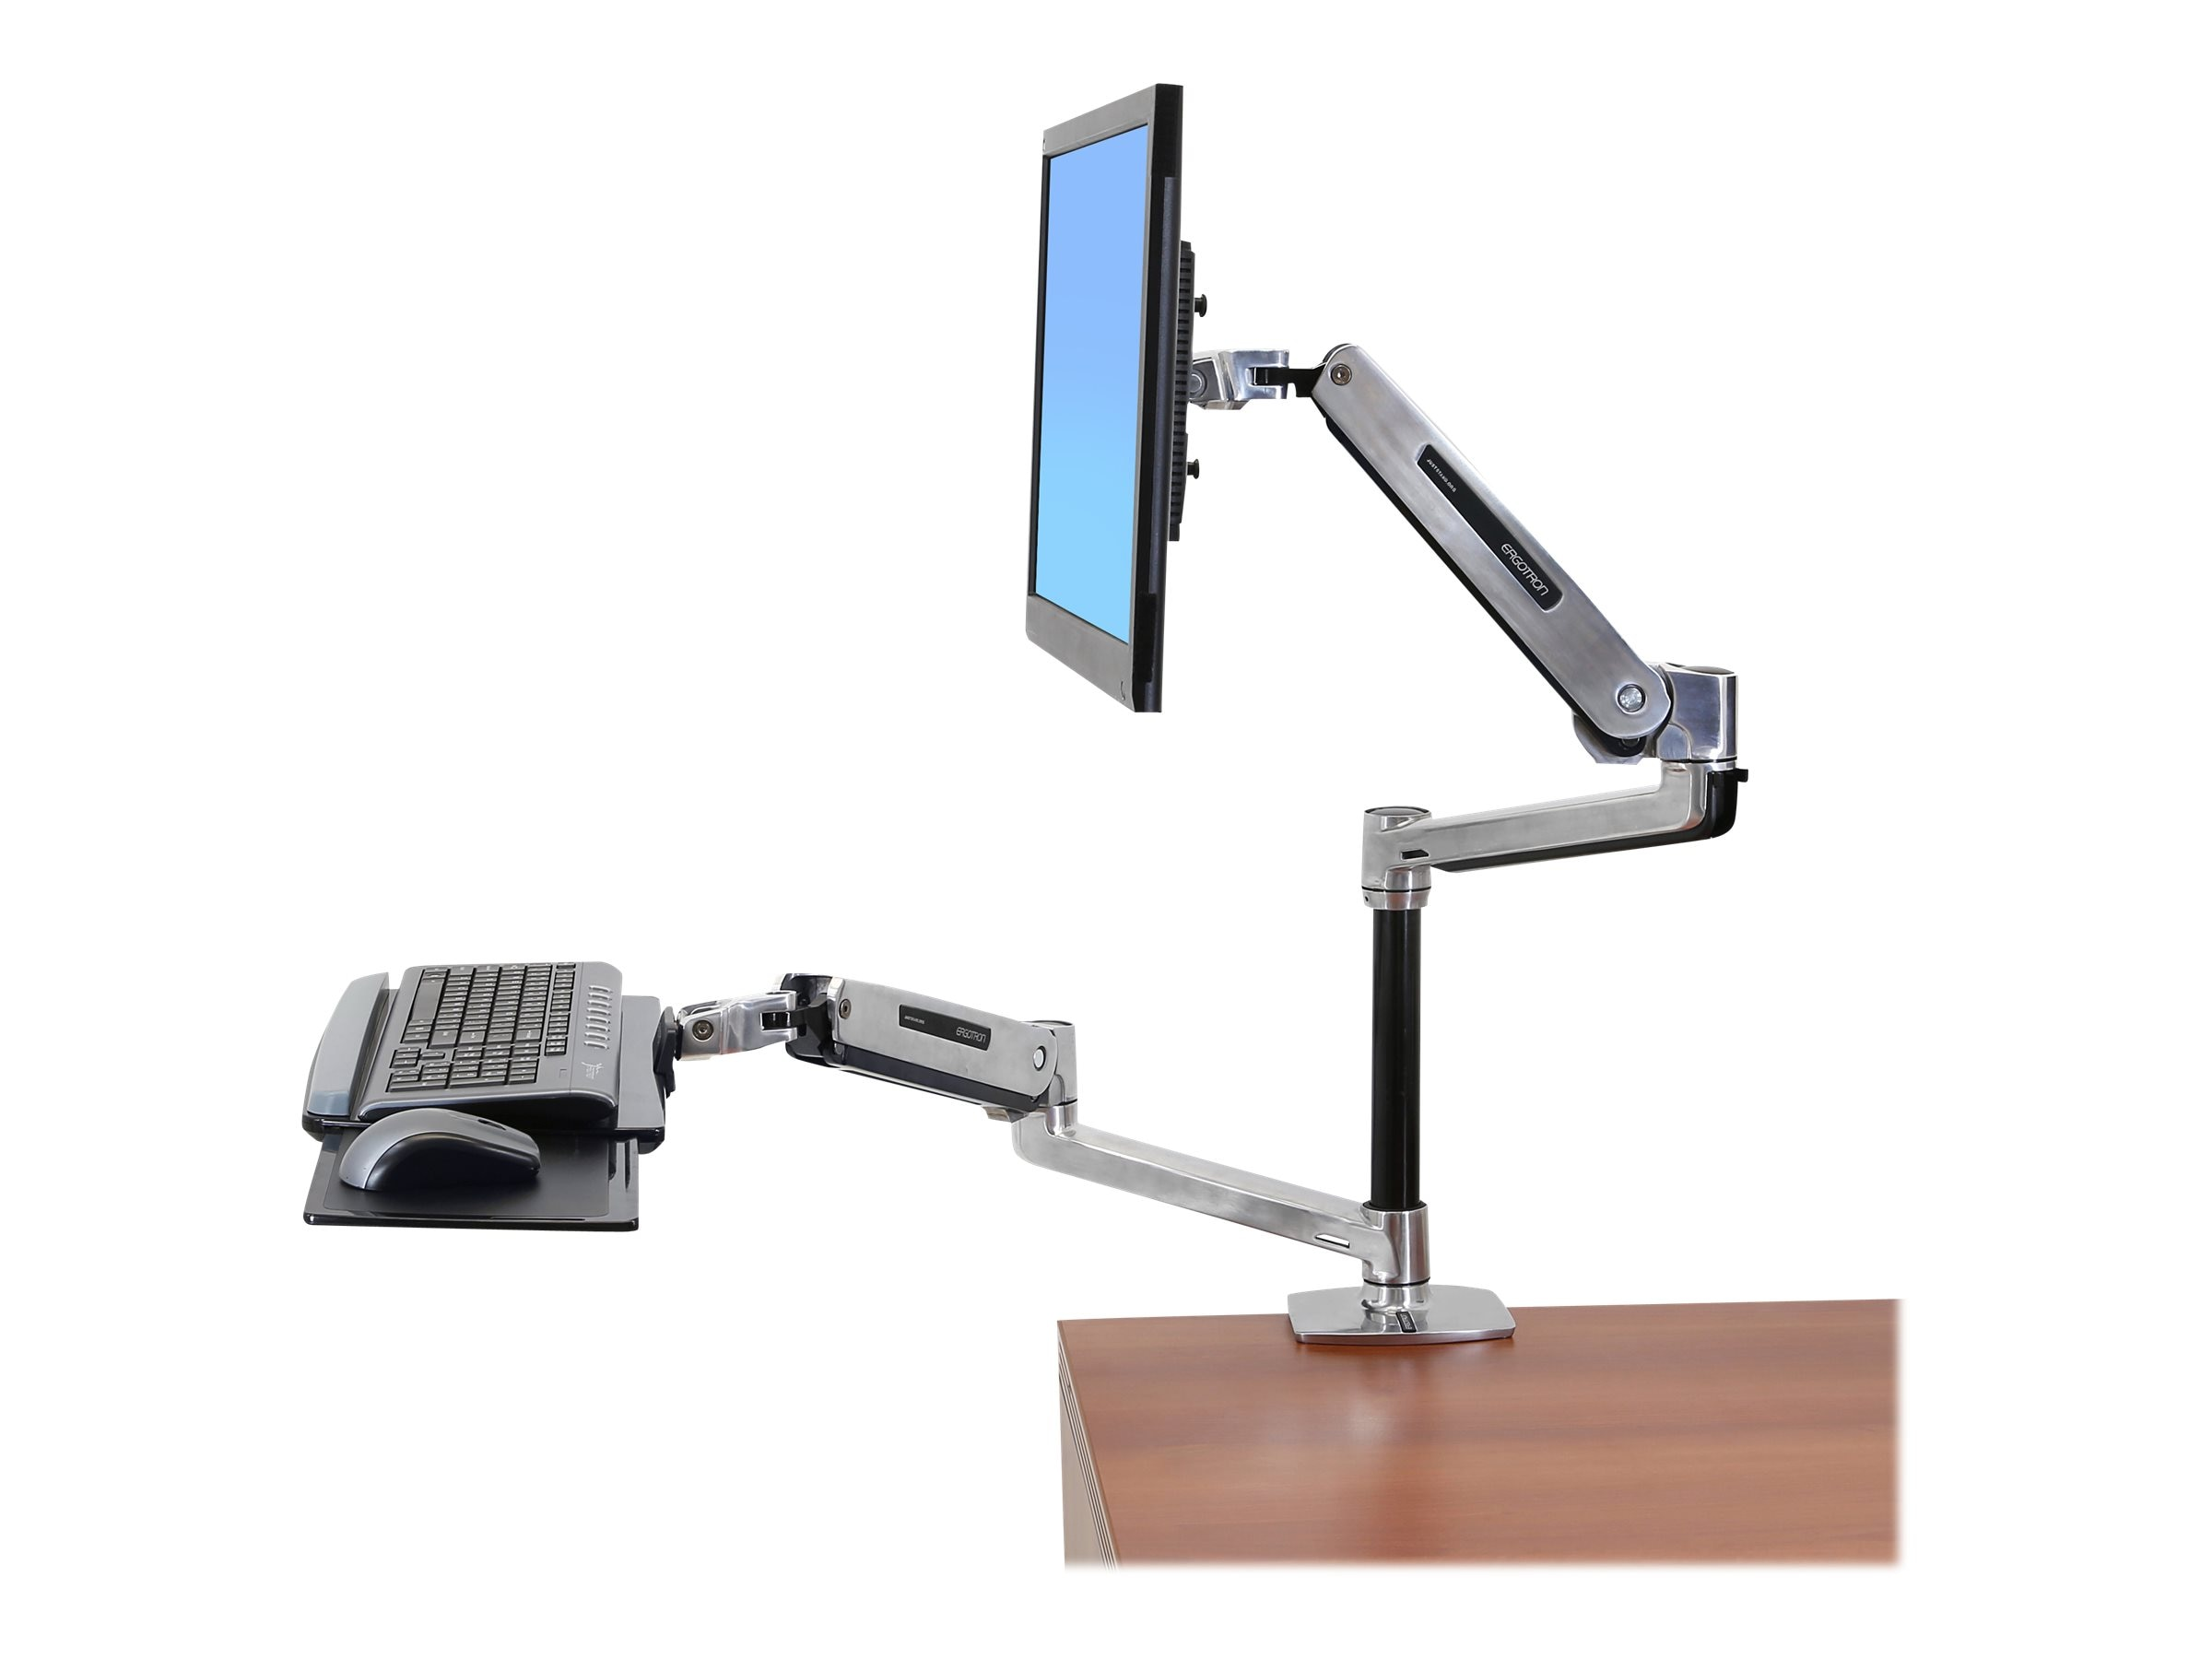 Ergotron WorkFit-LX, Sit-Stand Desk Mount System, 45-405-026, 17299061, Ergonomic Products